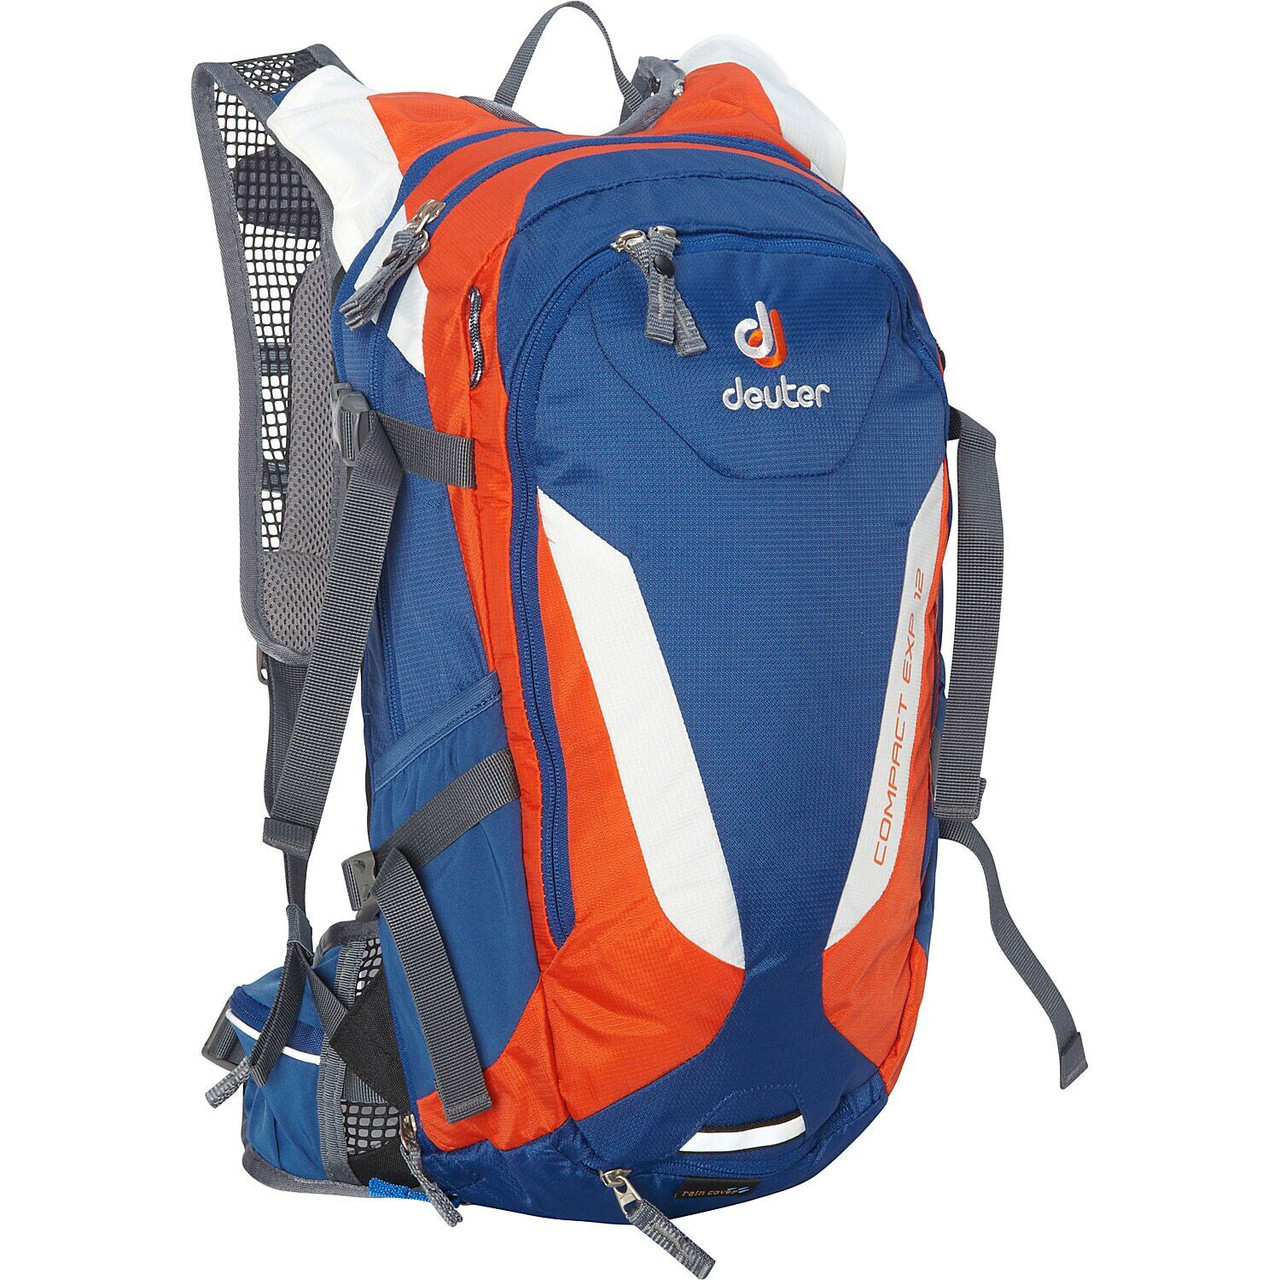 Велорюкзак Deuter Compact EXP 12 steel-papaya (3200215 3905)